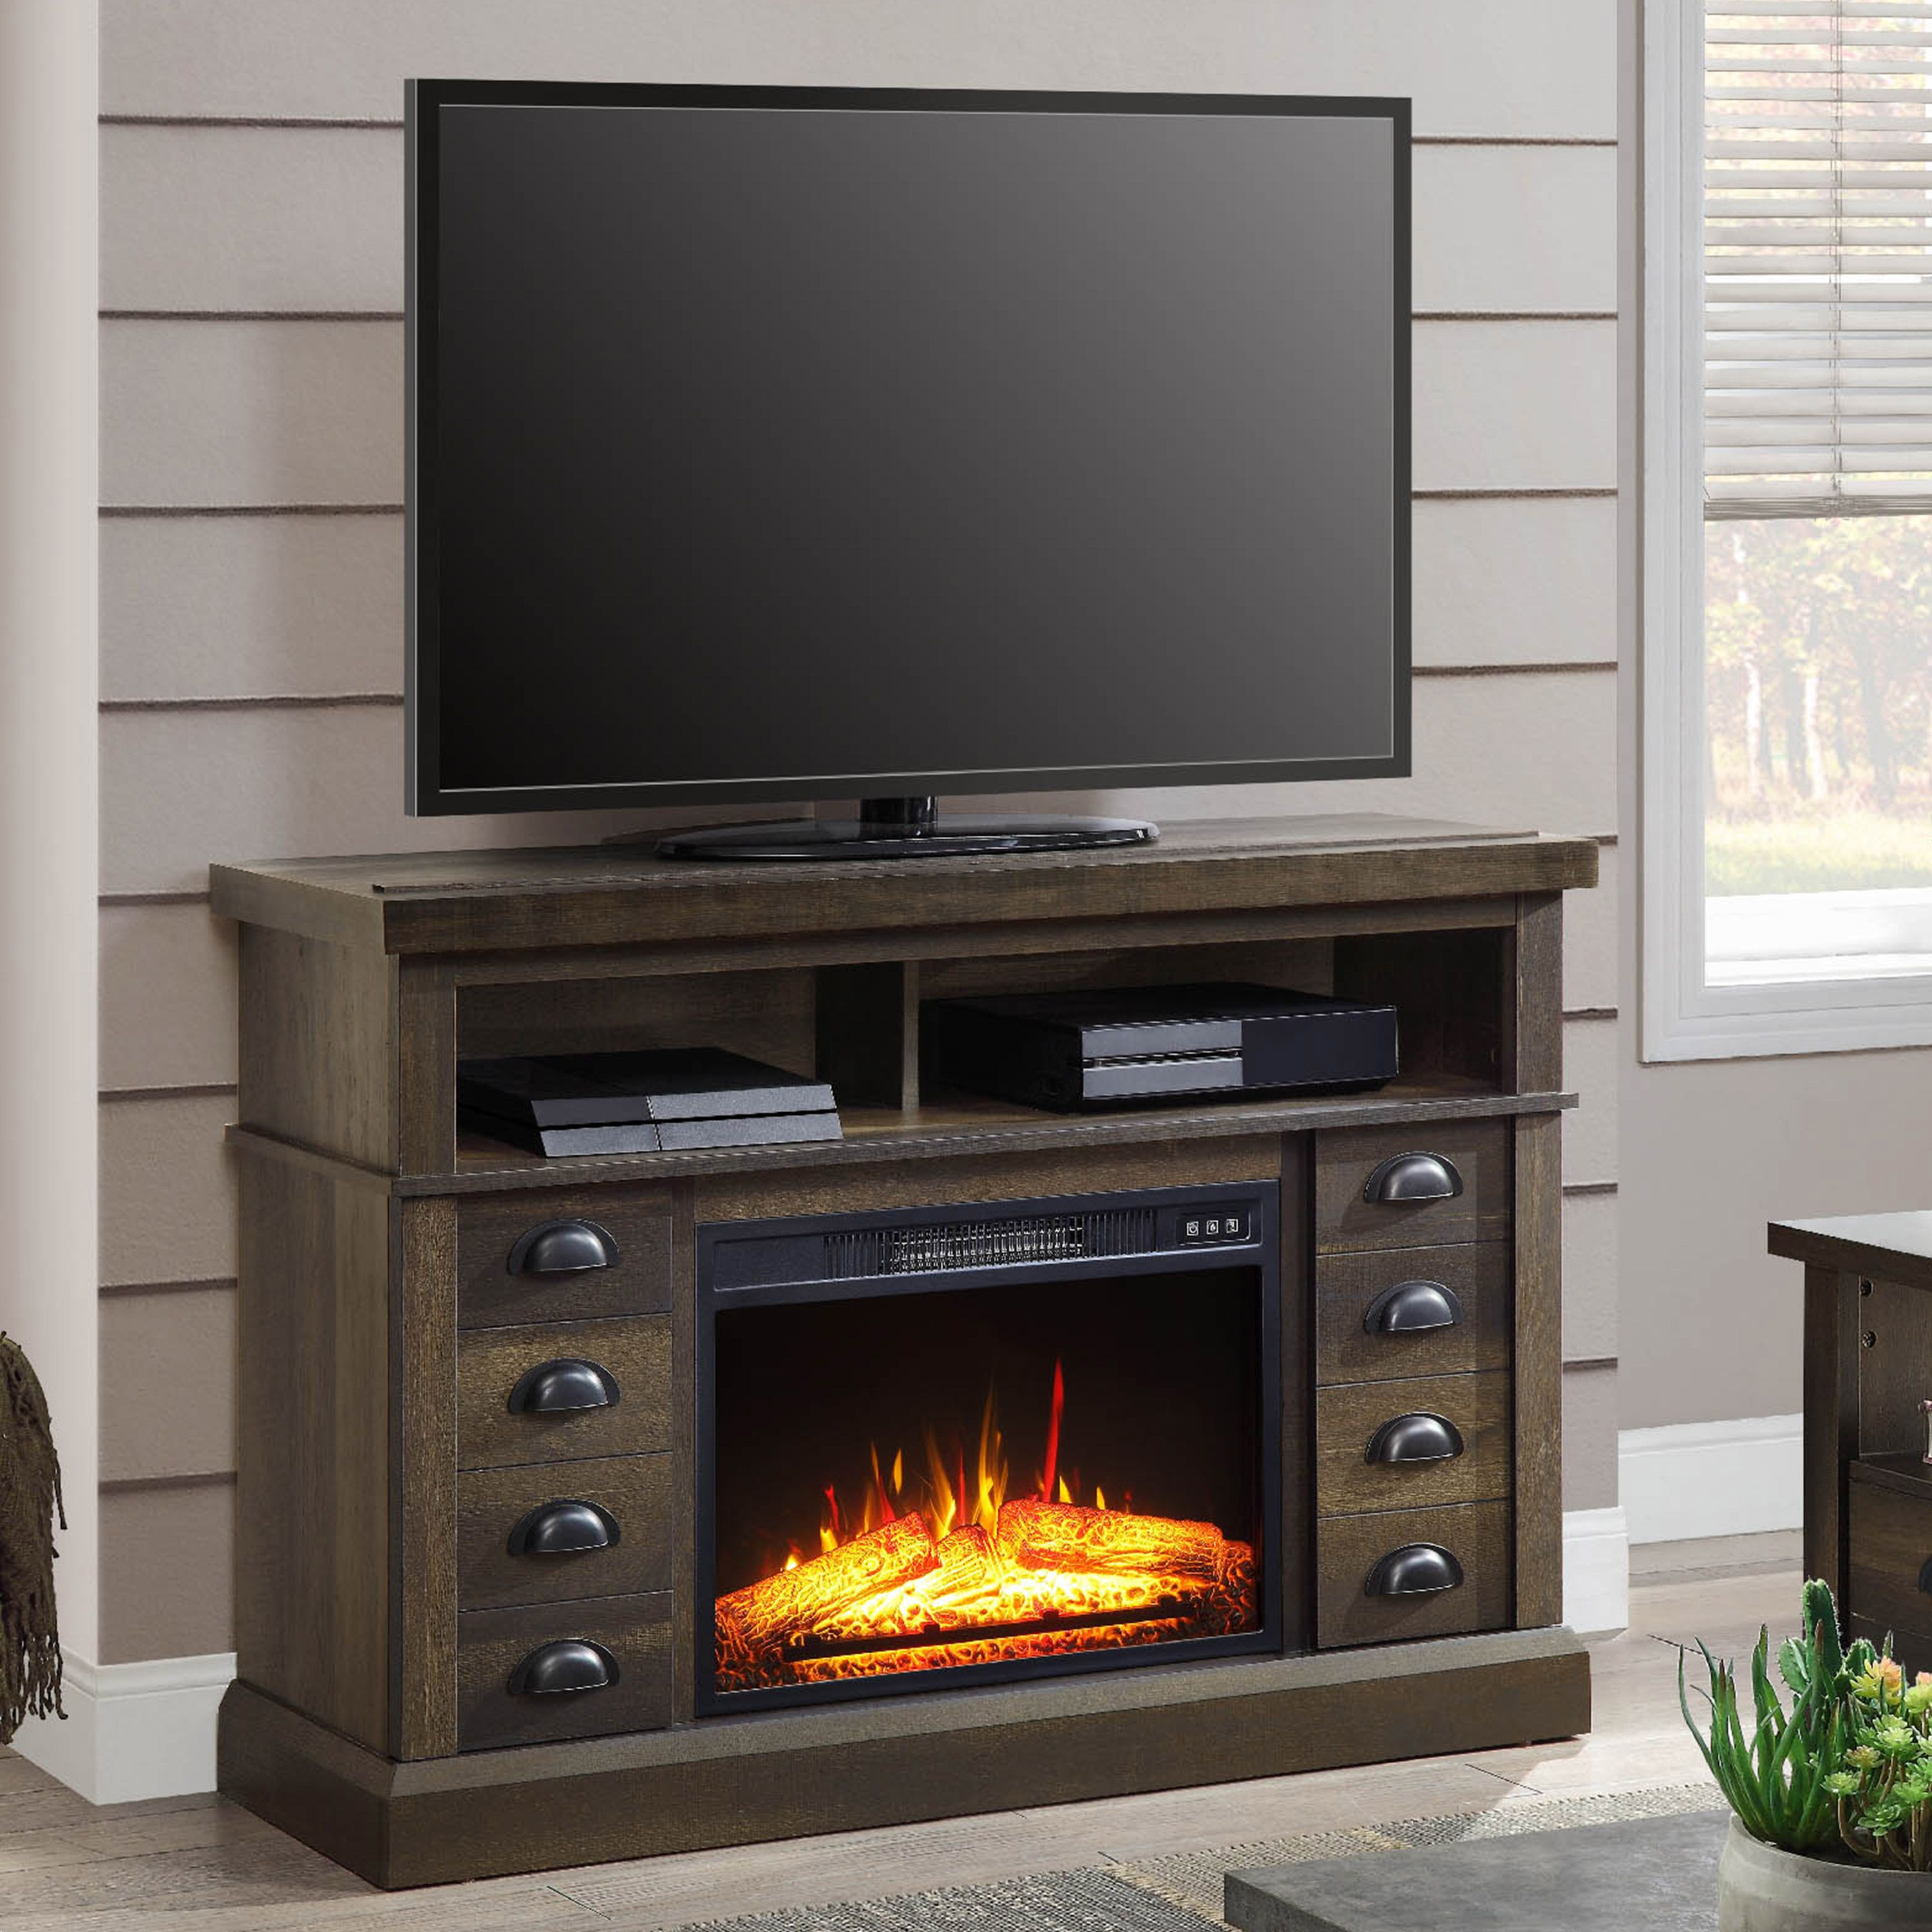 Home Fireplace tv stand, Fireplace console, Tv console